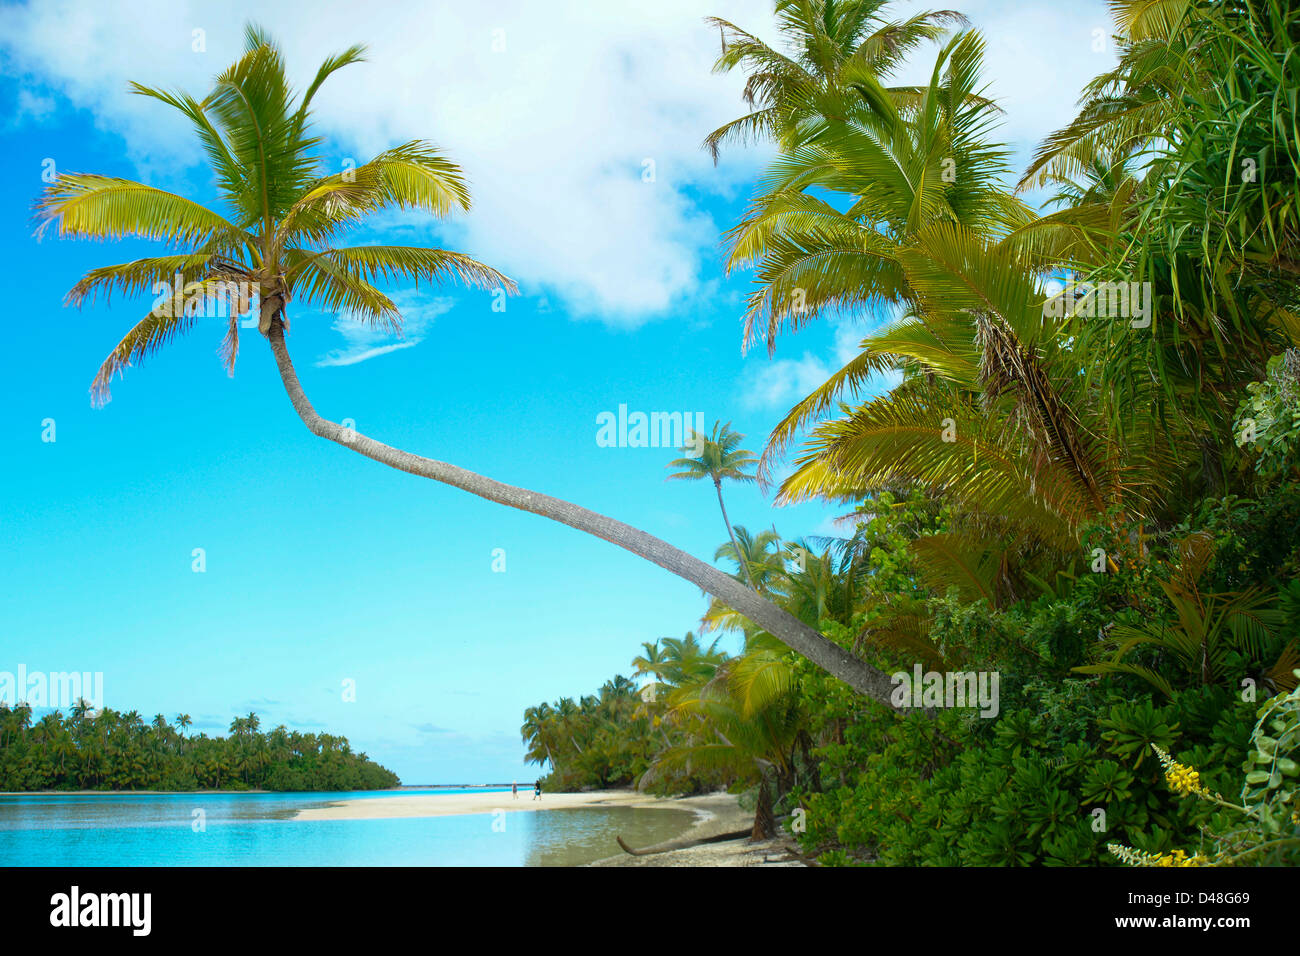 Coconut palm trees lean over a beautiful tropical beach. - Stock Image